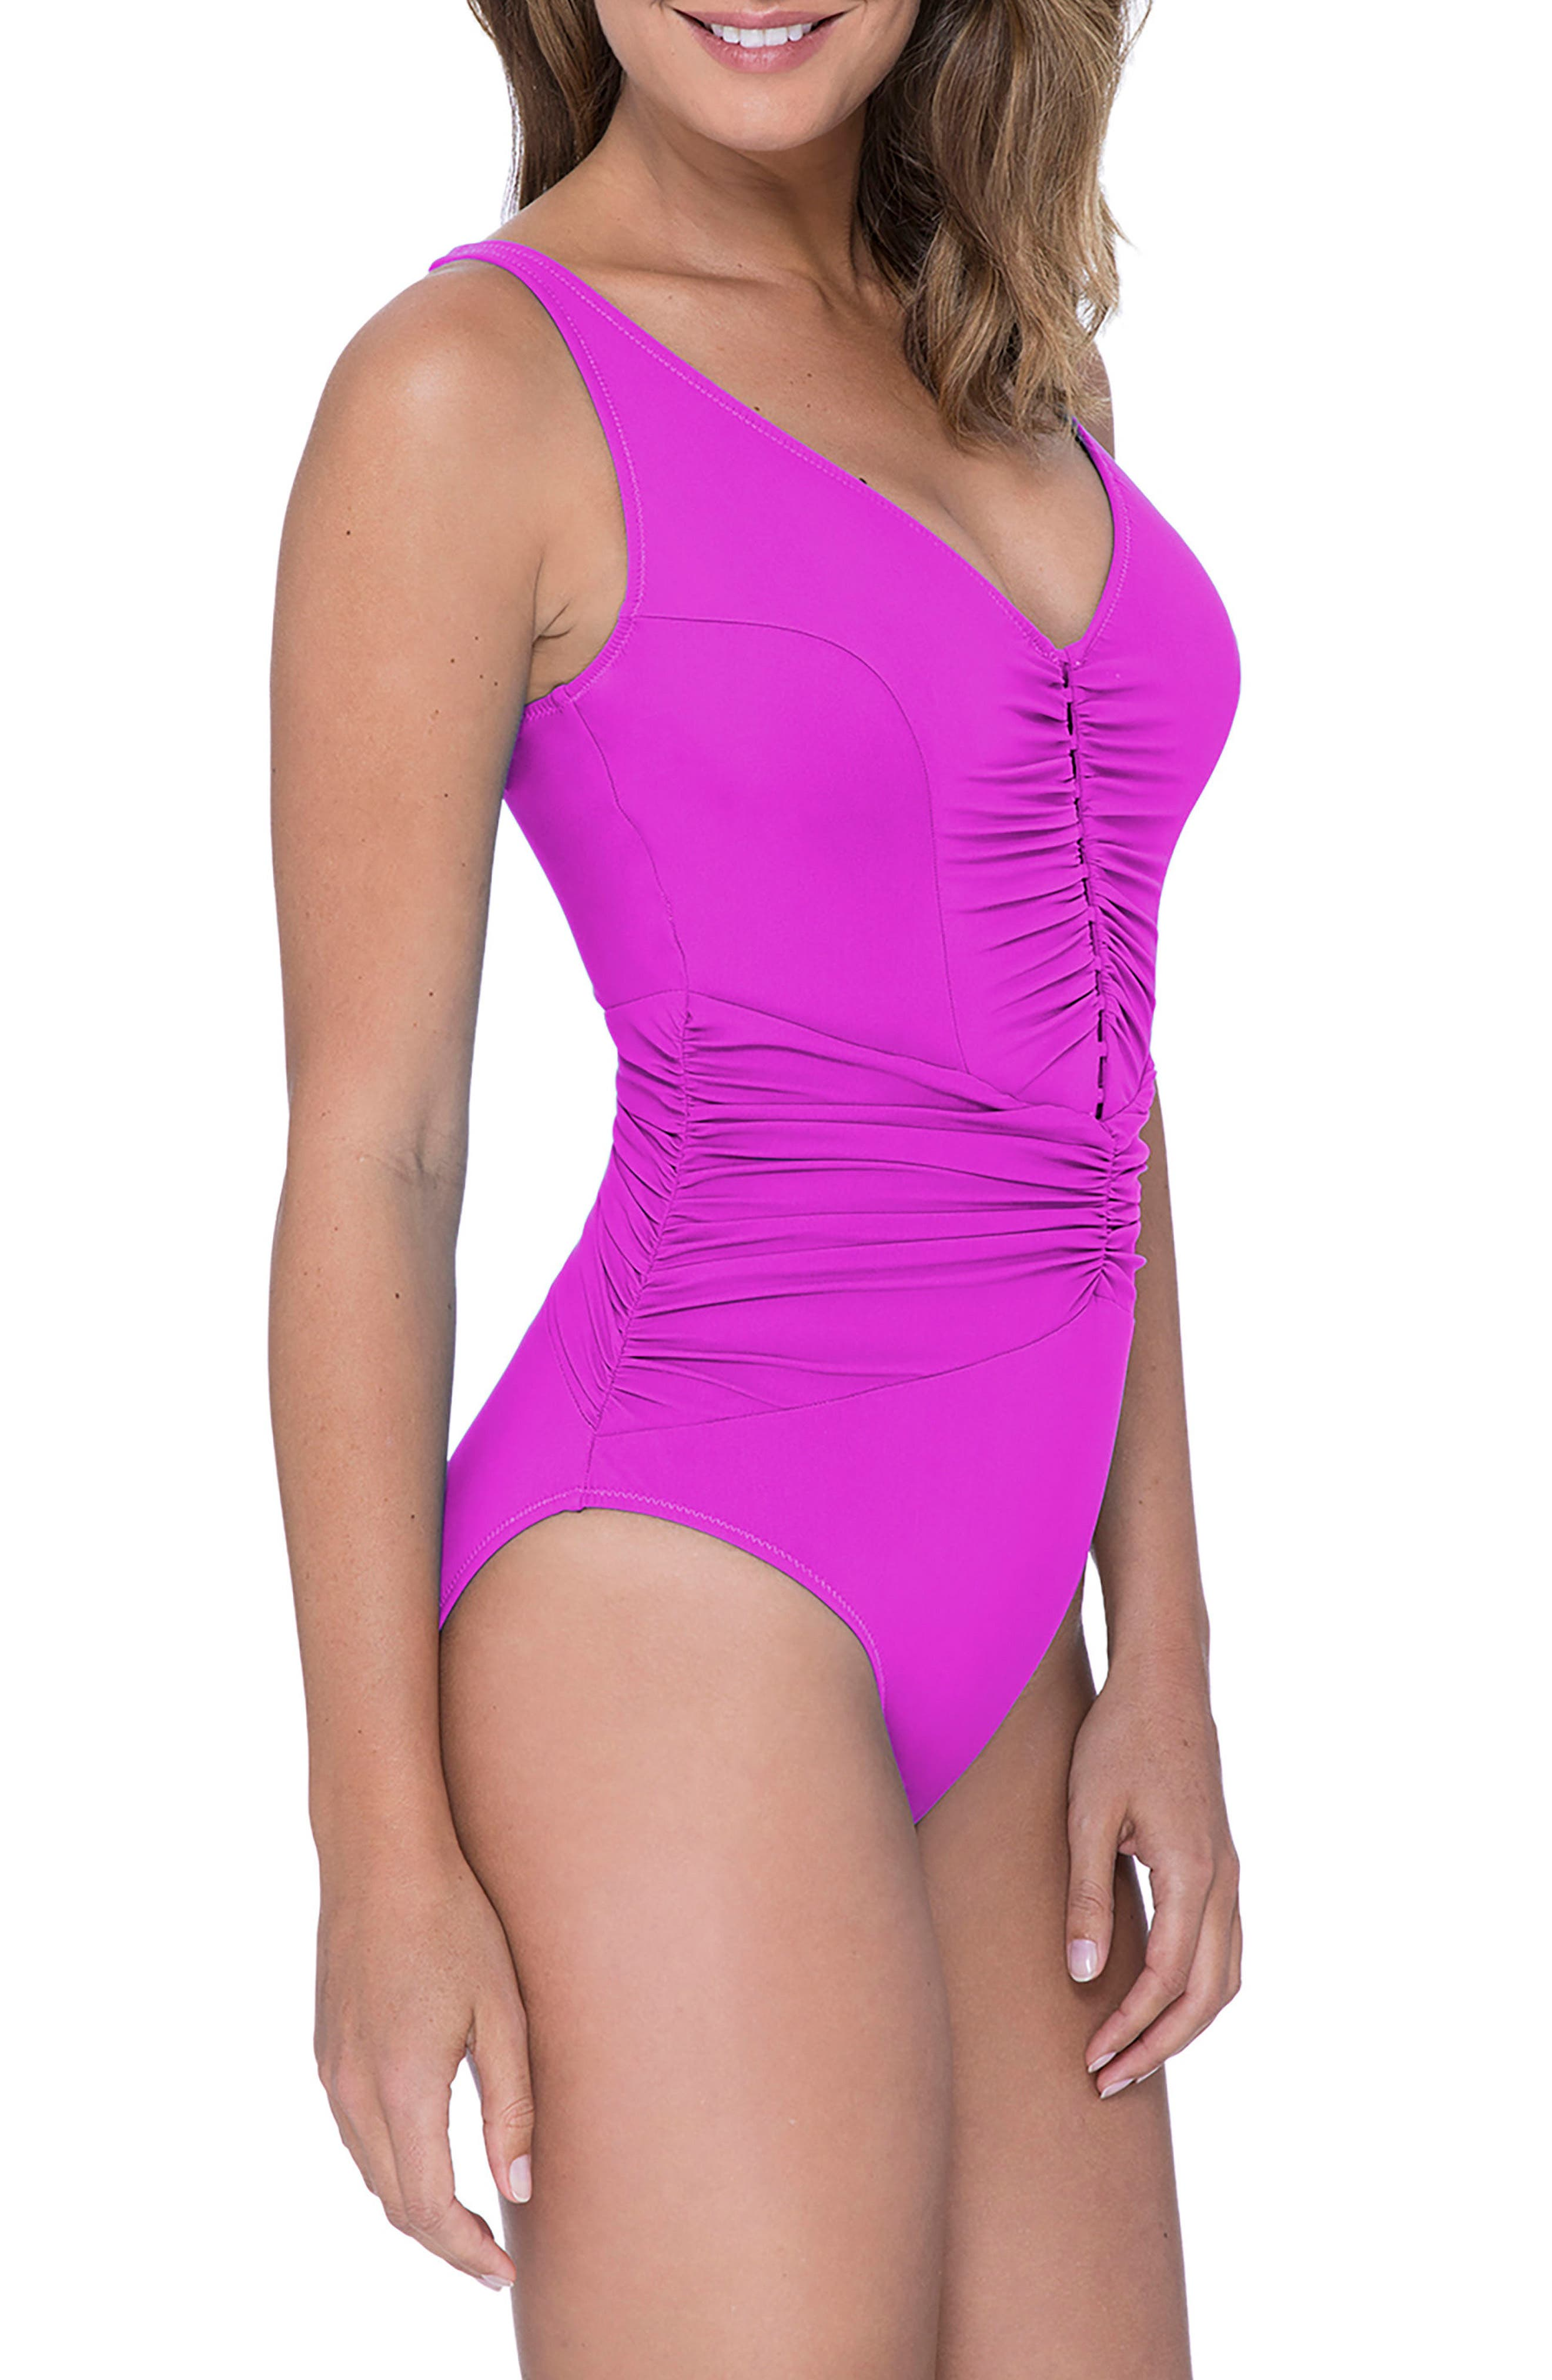 Cocktail Party One-Piece Swimsuit,                             Alternate thumbnail 3, color,                             WARM VIOLA